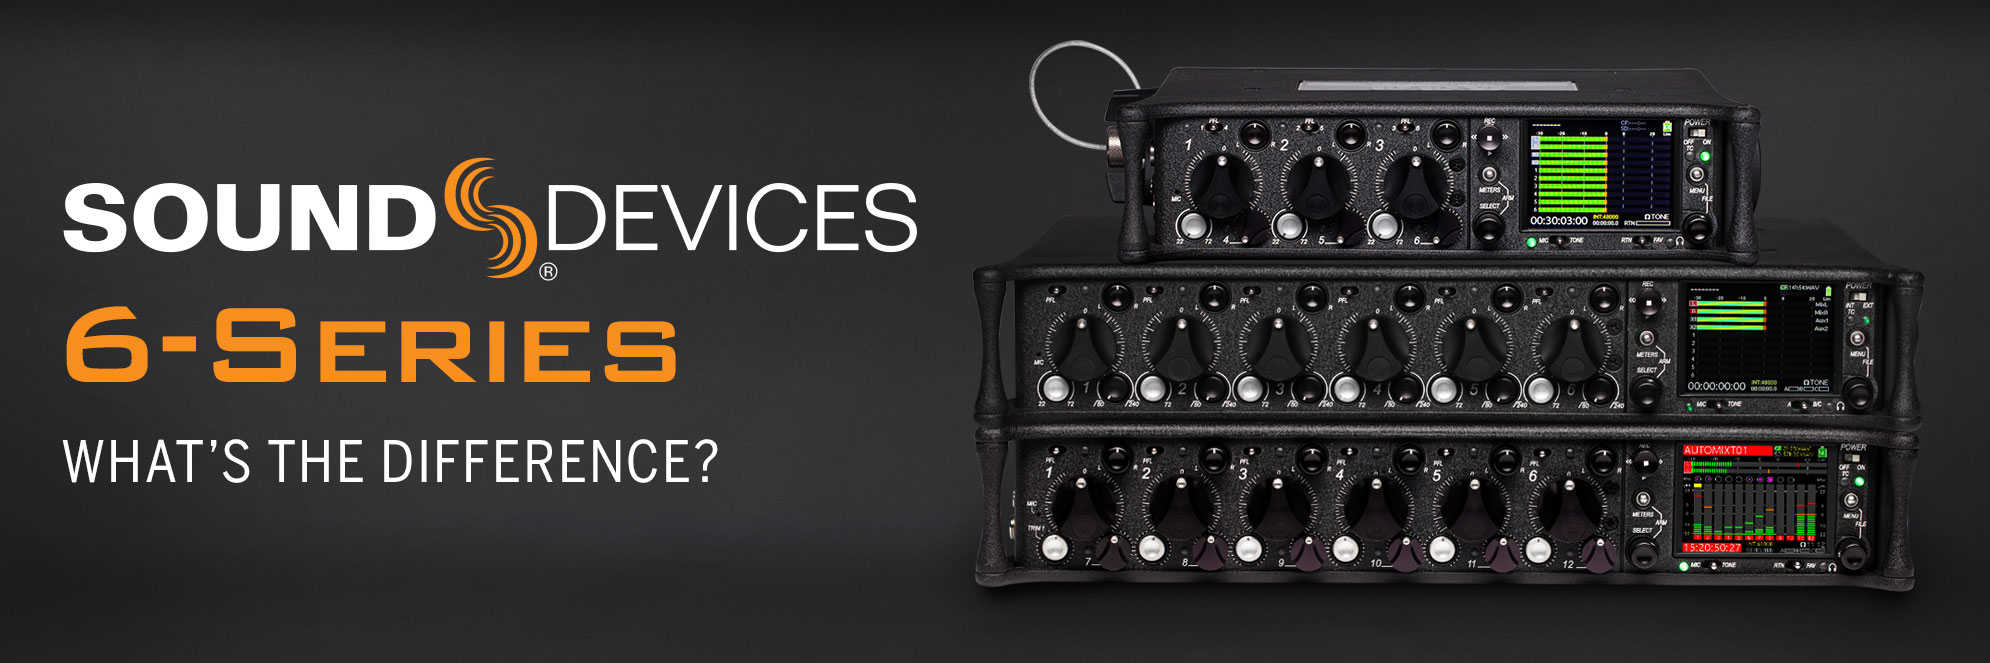 Sound Devices 6-Series Comparison